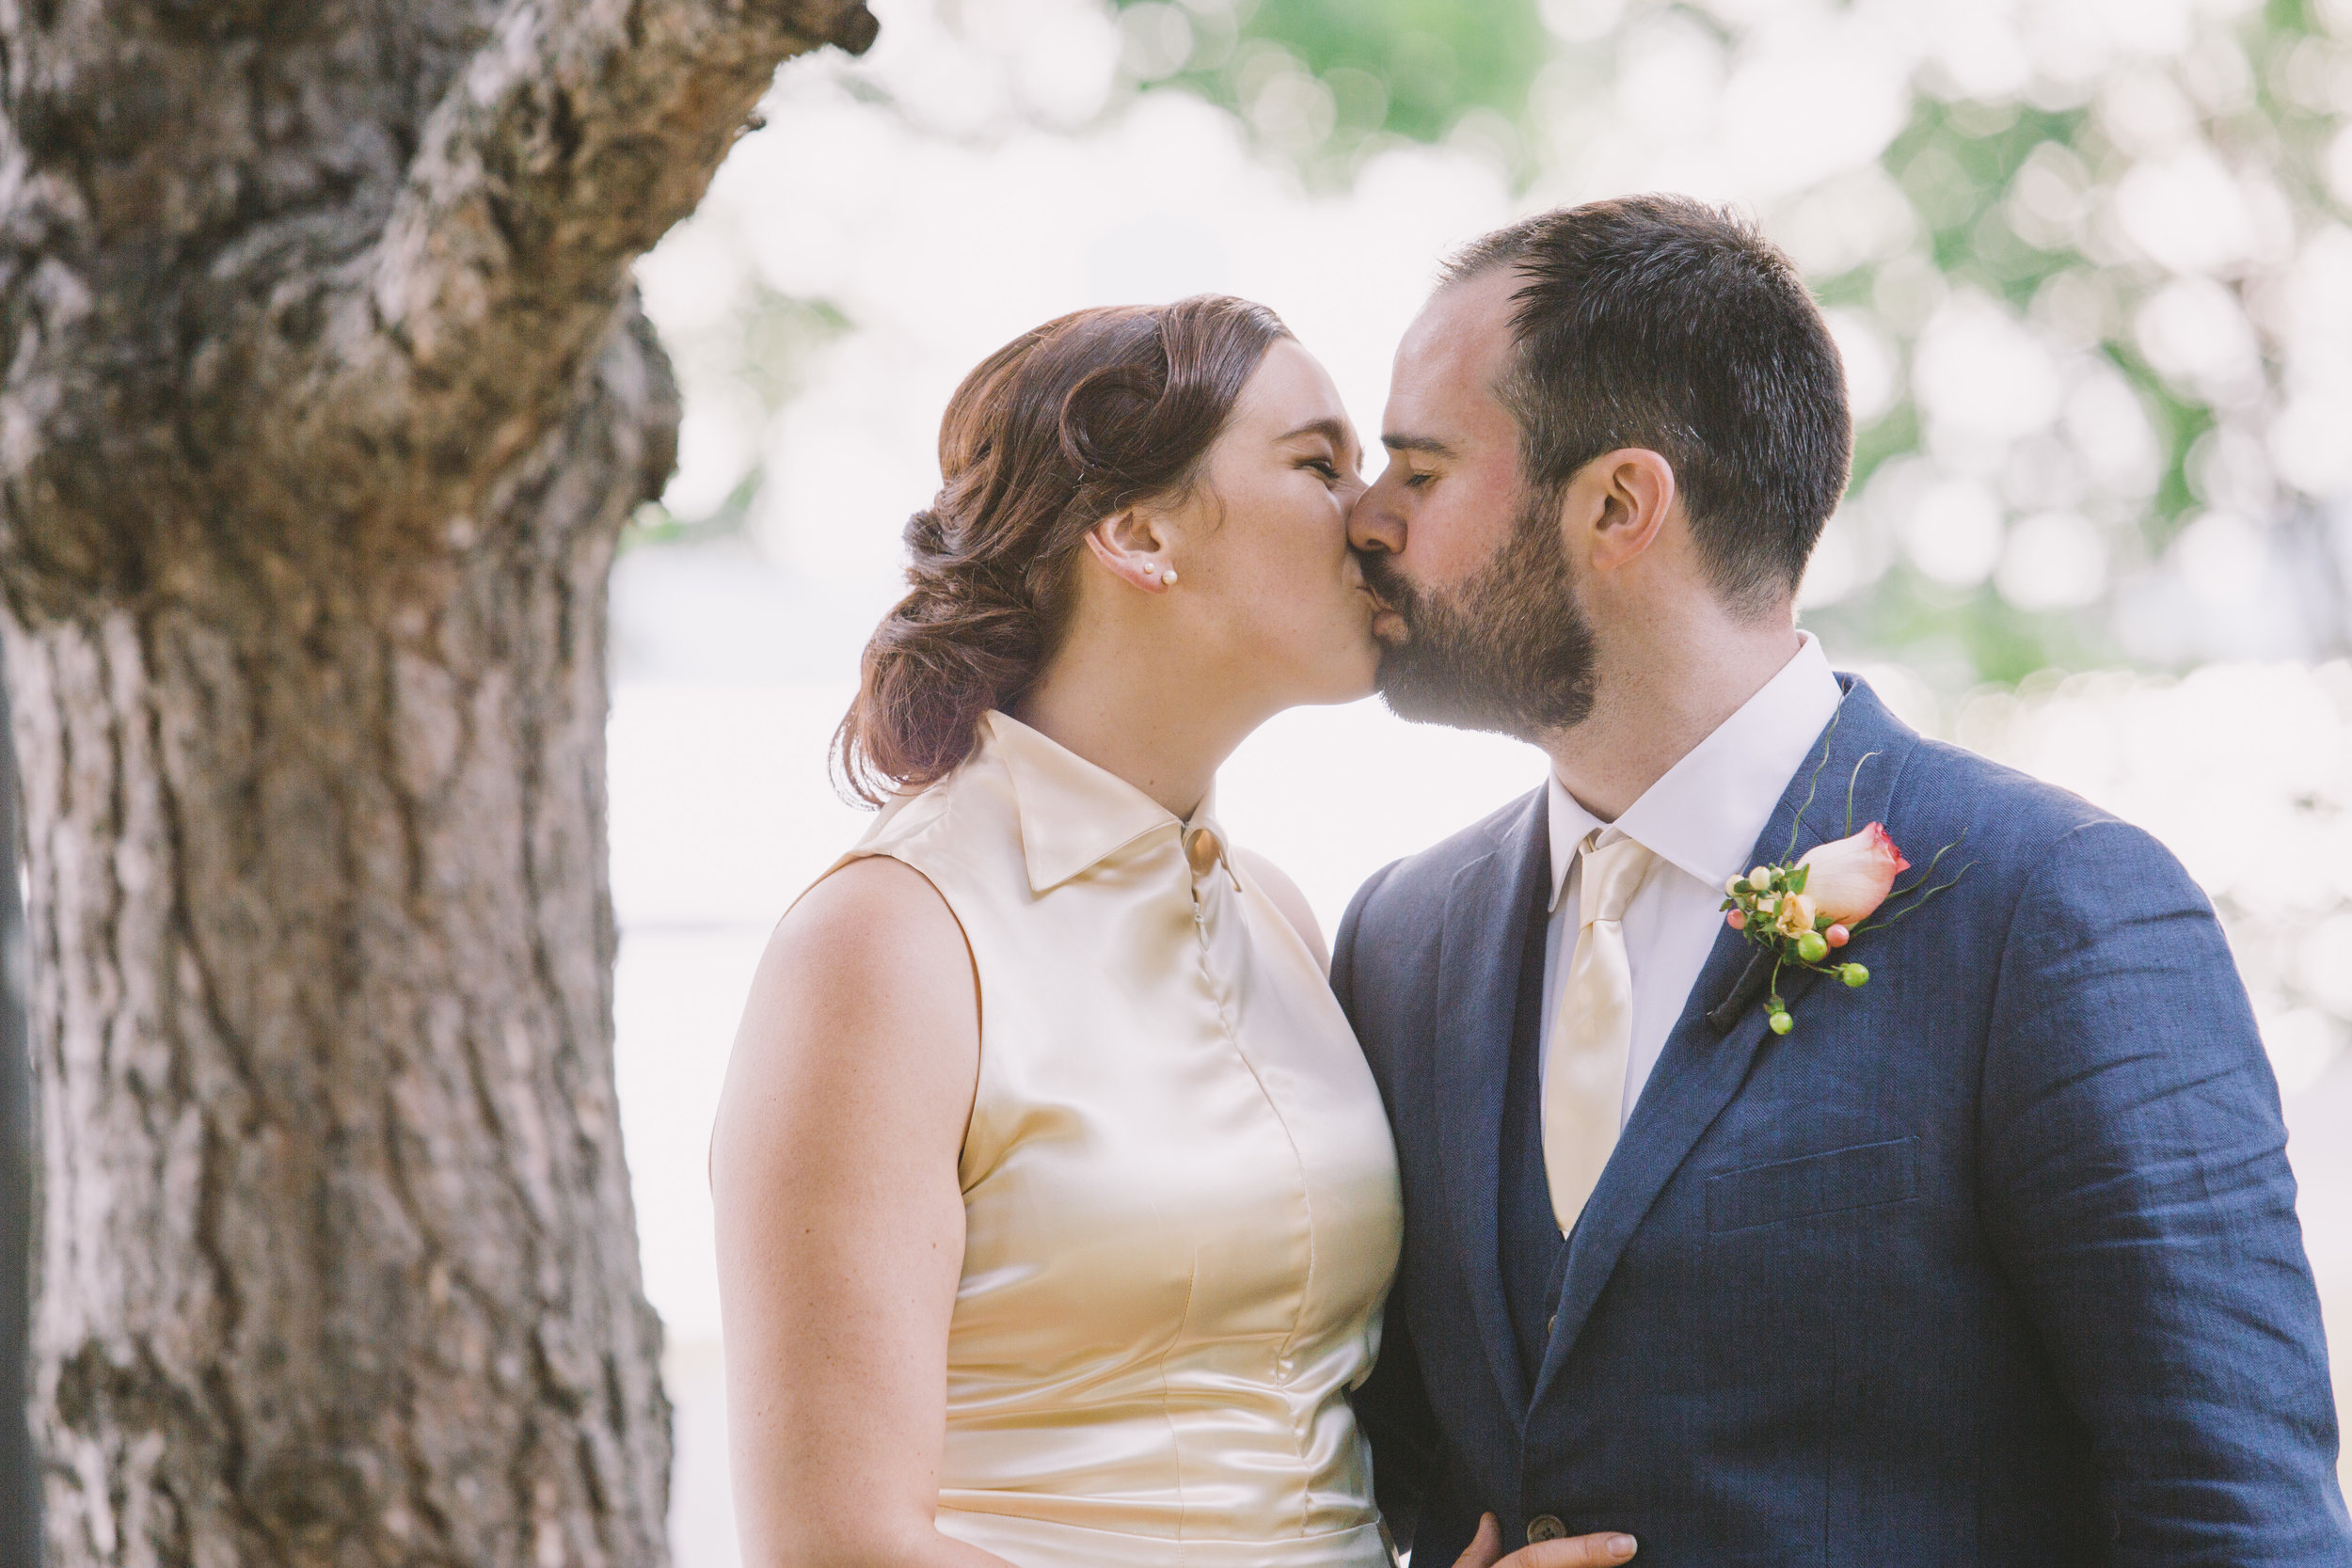 Wedding Portraits in the Park at the Toronto Argonaut Rowing Club